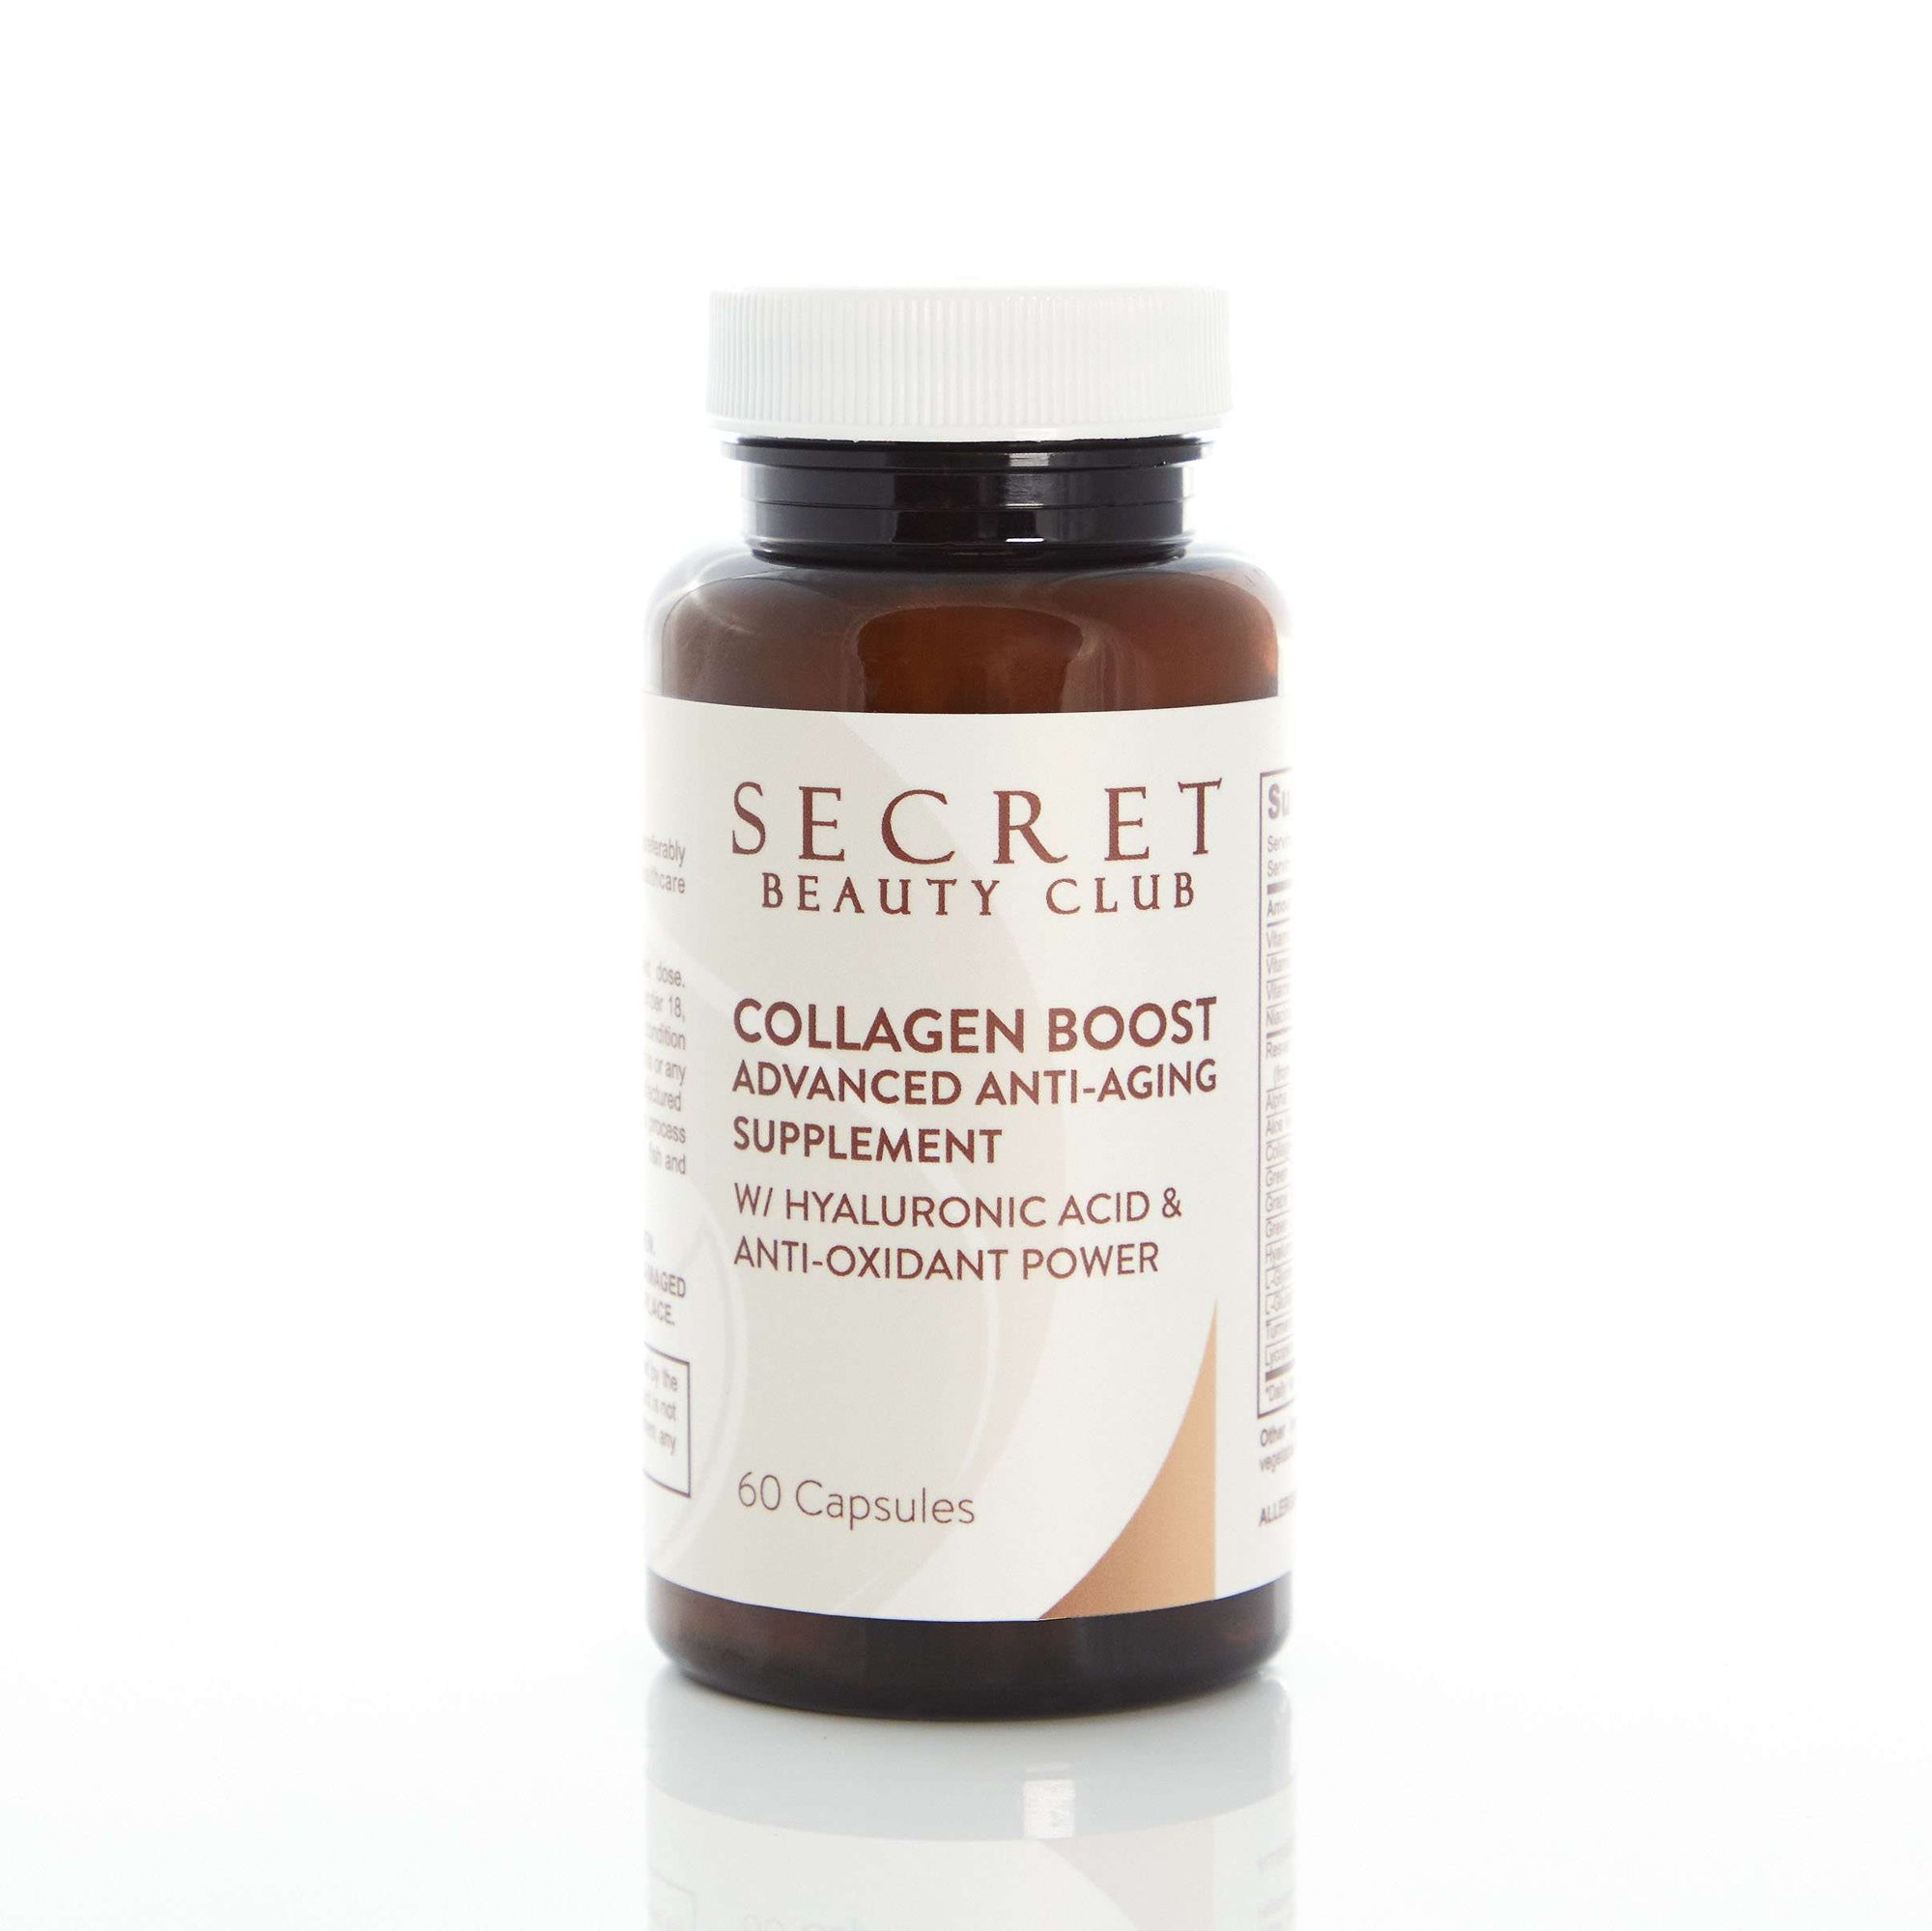 Collagen Boost Advanced Anti-Aging Supplement